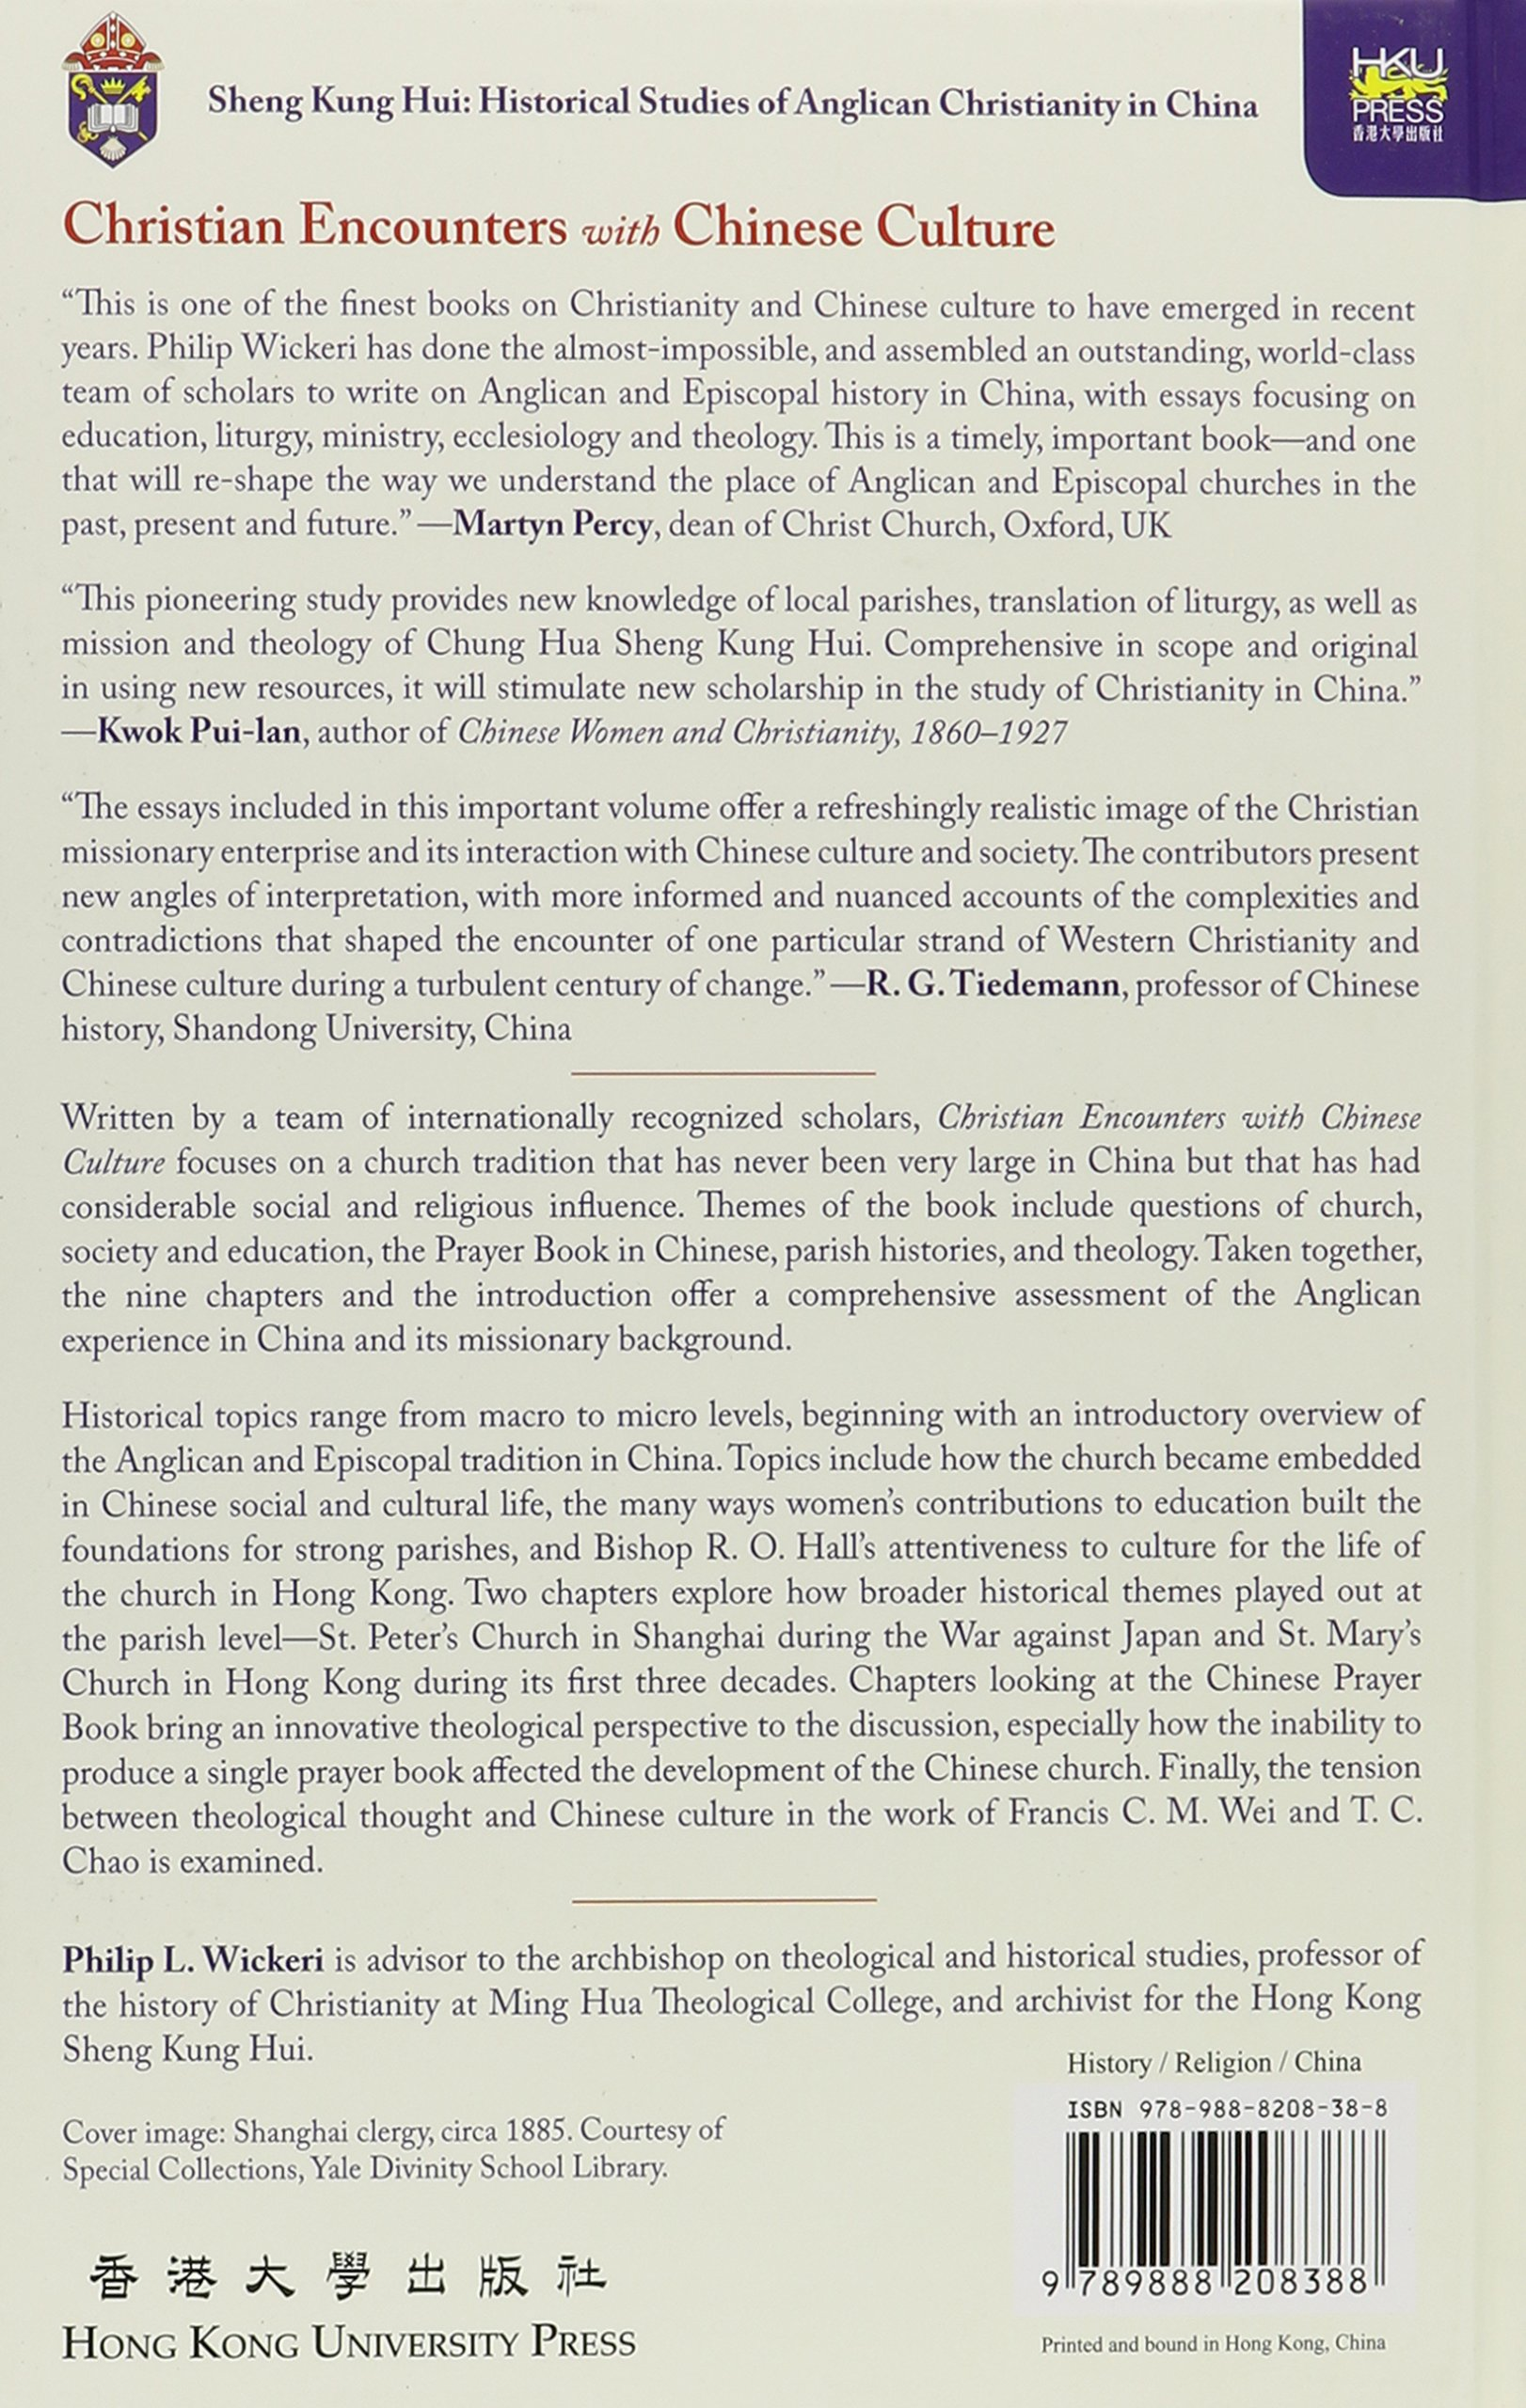 Fifth Business Essays Christian Encounters With Chinese Culture Essays On Anglican And Episcopal  History In China Sheng Kung Hui Historical Studies Of Anglican  Christianity In  Best Custom Writing Company also Example Of An Essay Paper Christian Encounters With Chinese Culture Essays On Anglican And  How To Write A High School Essay